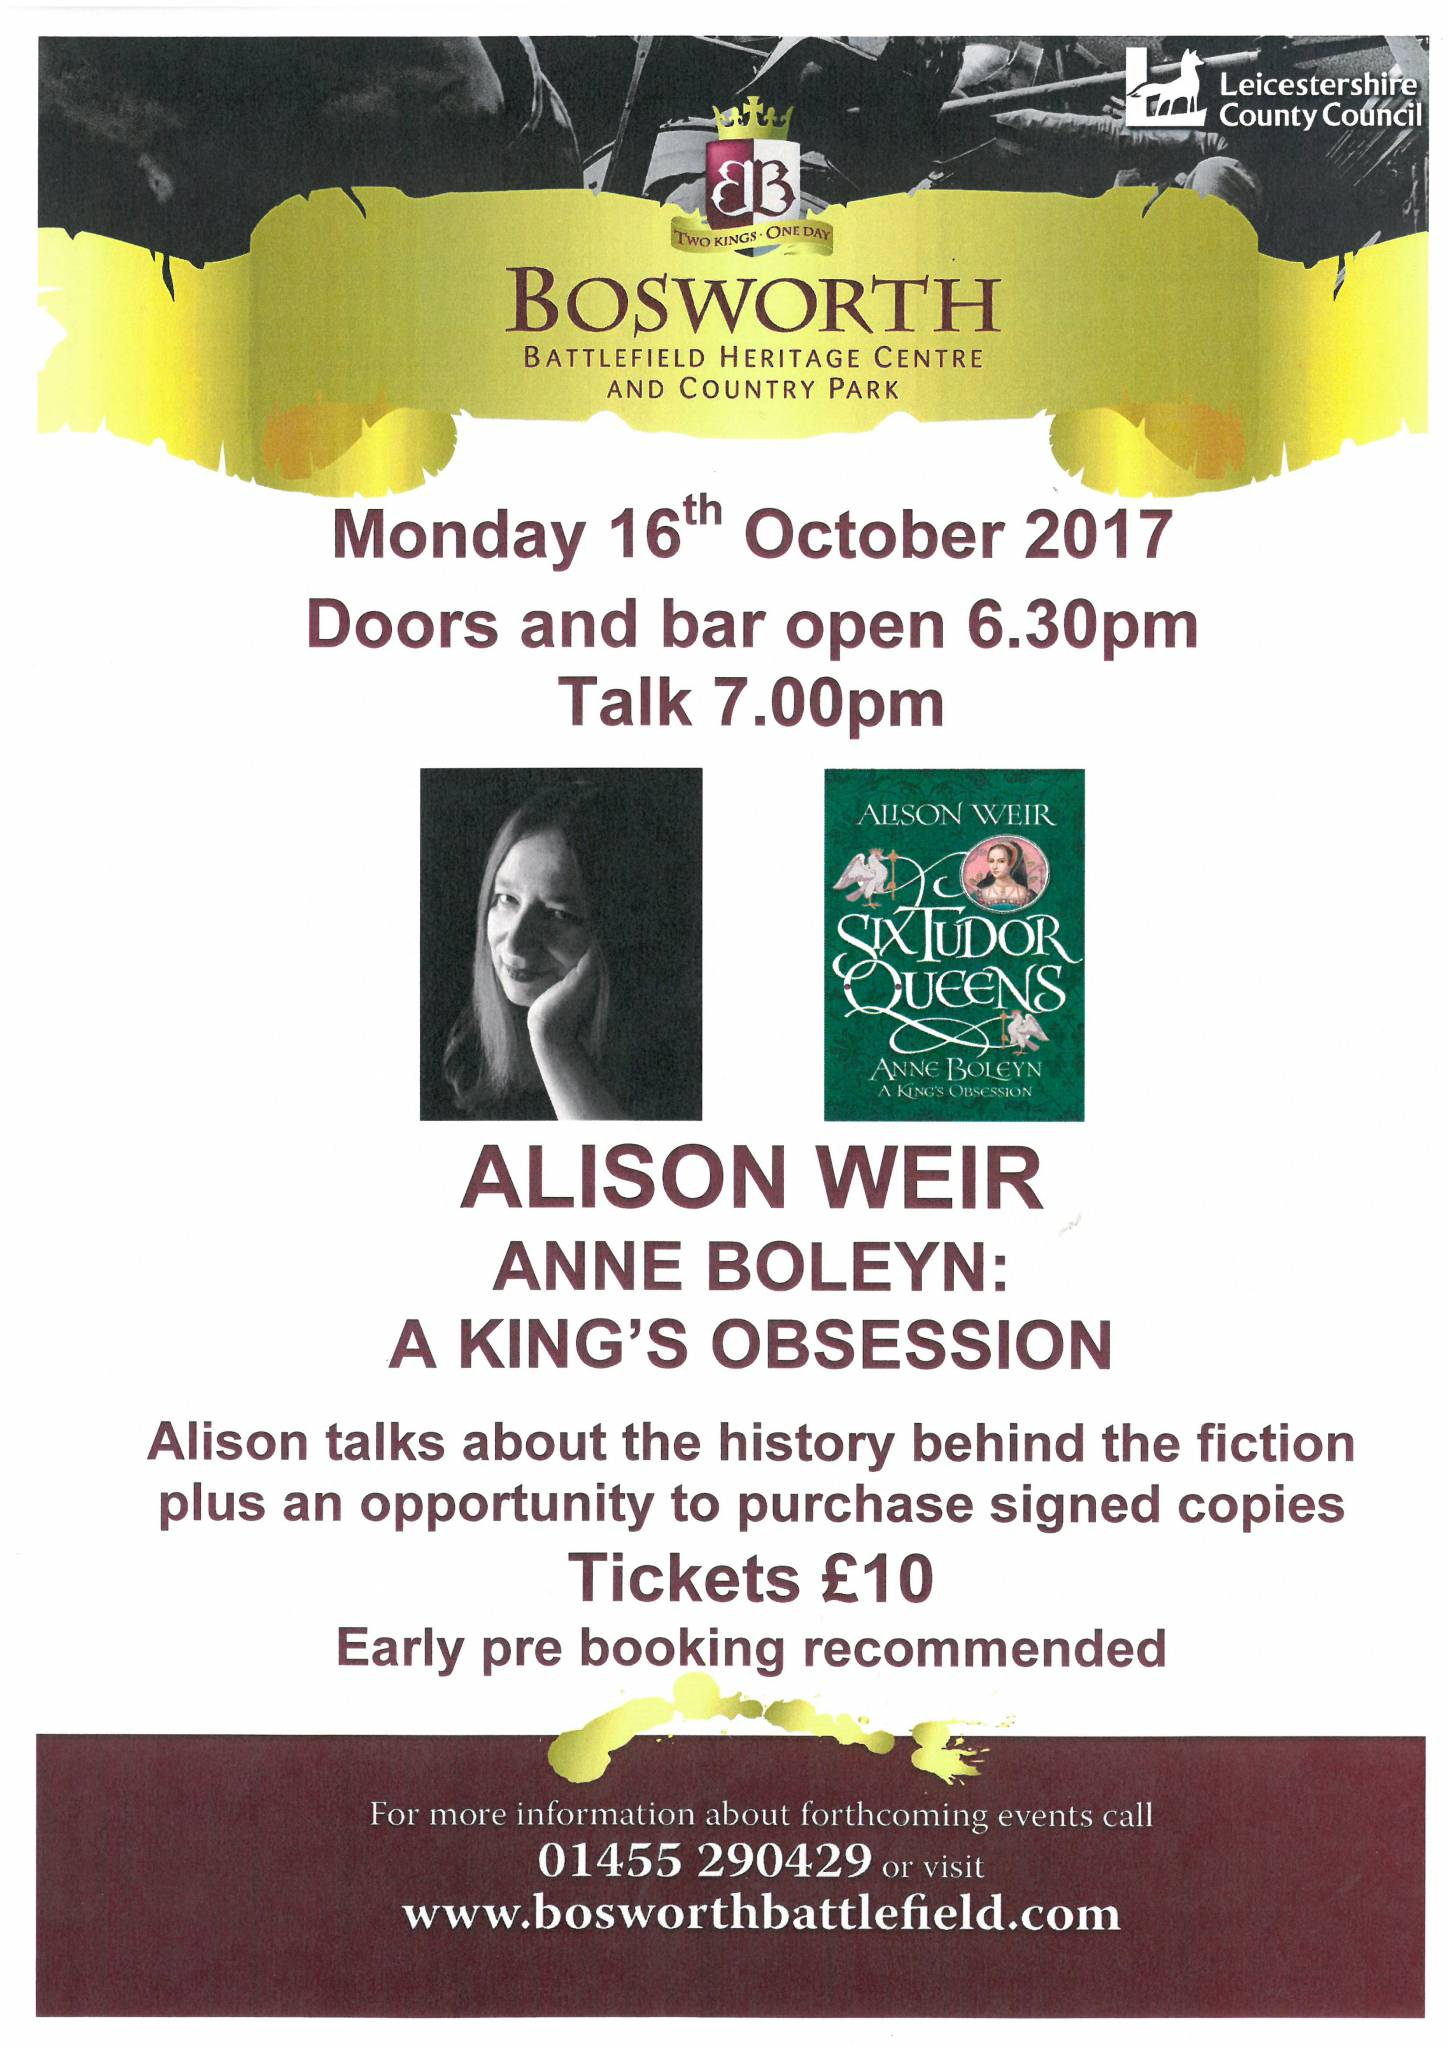 Alison Weir - Anne Boleyn: A King's Obsession (SOLD OUT)